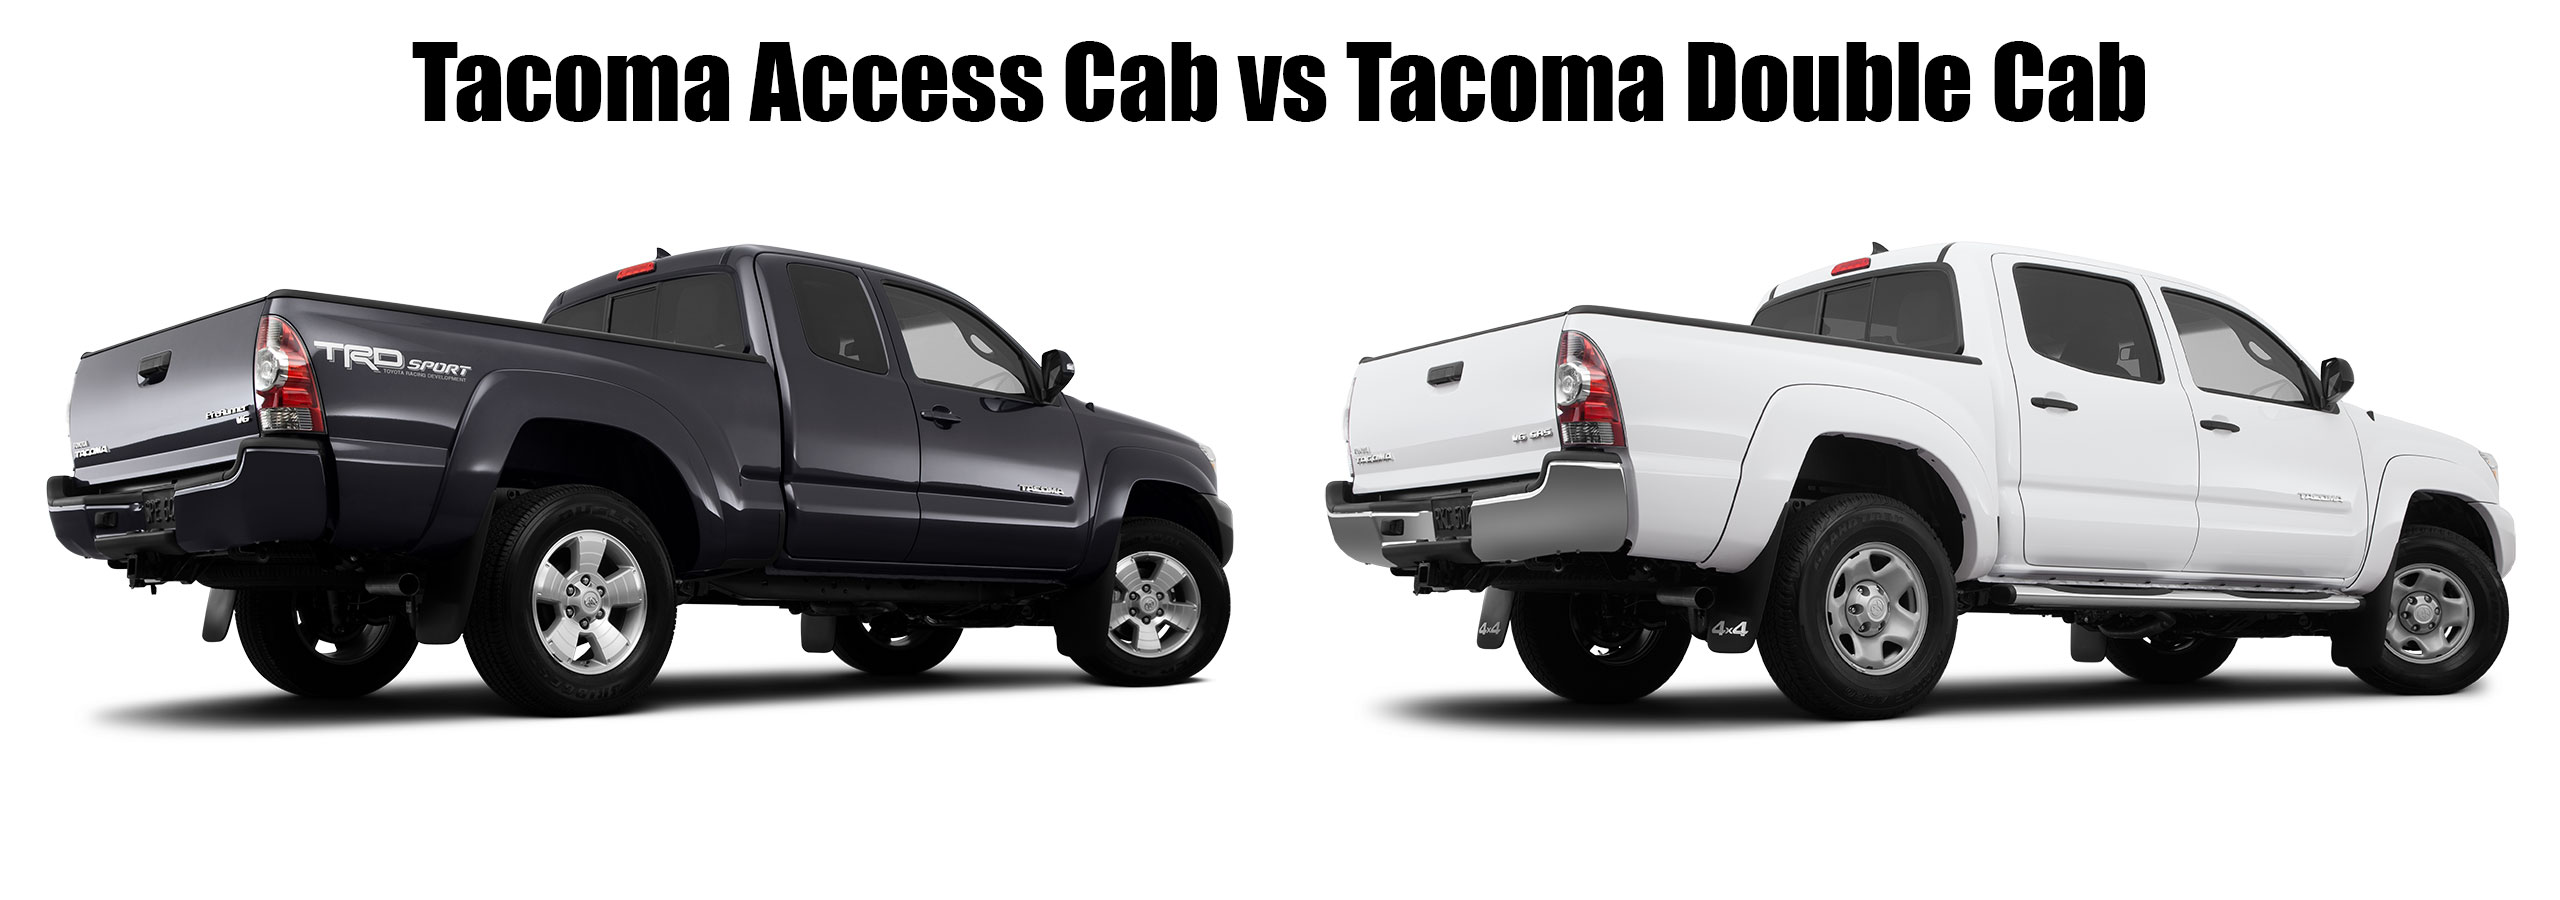 What's The Difference Between A Ta a Access and Double Cab